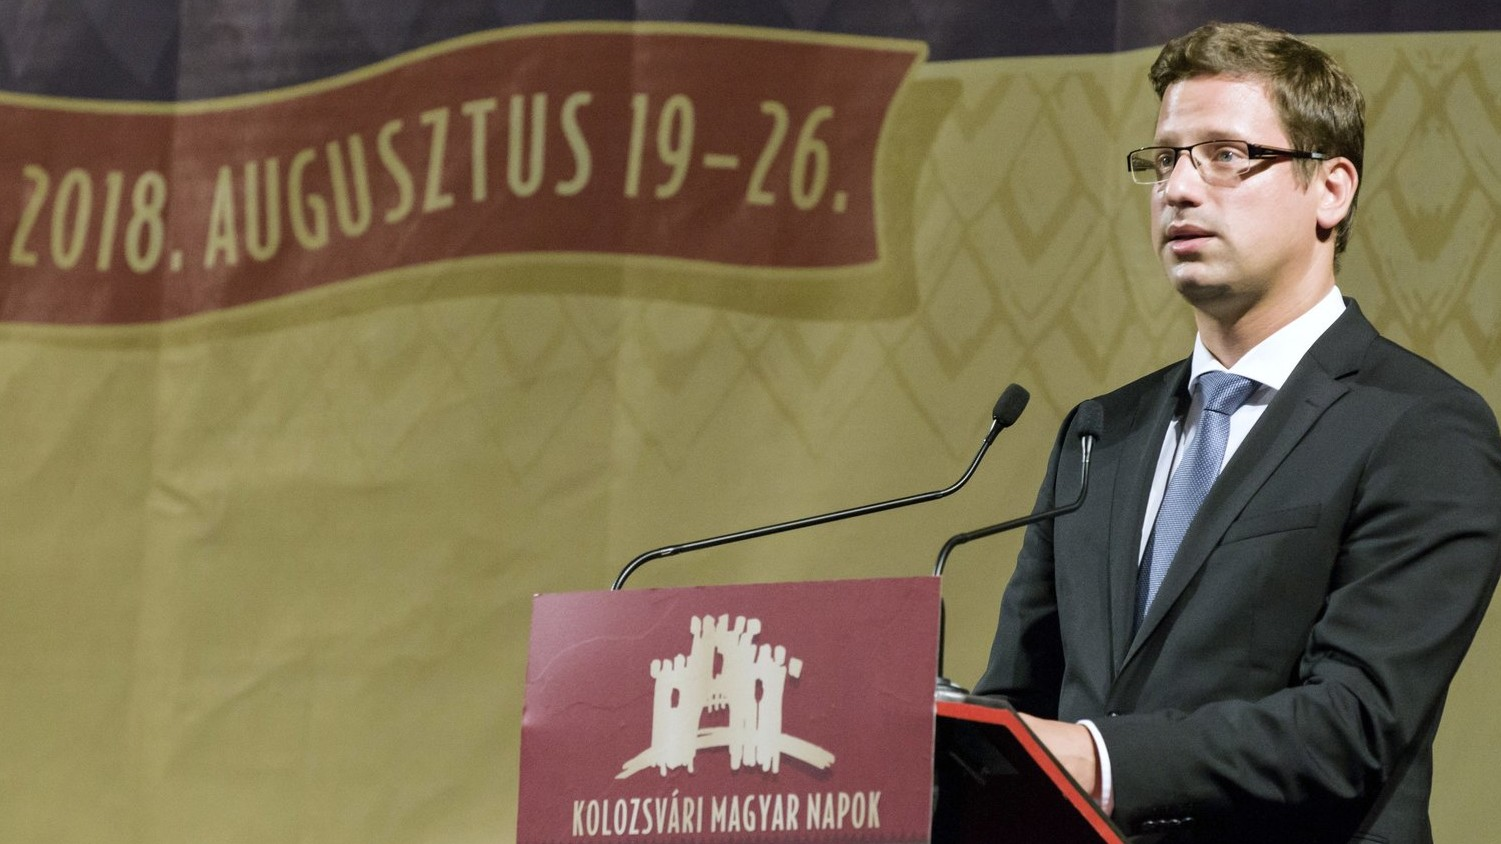 Gergely Gulyás, Minister of the Prime Minister, speaks at the opening ceremony of the 9th Hungarian time of Cluj Napoca in the construction of the Hungarian Opera House in Kolozsvár on 20 August 2018 (Photo: MTI / István Biró)